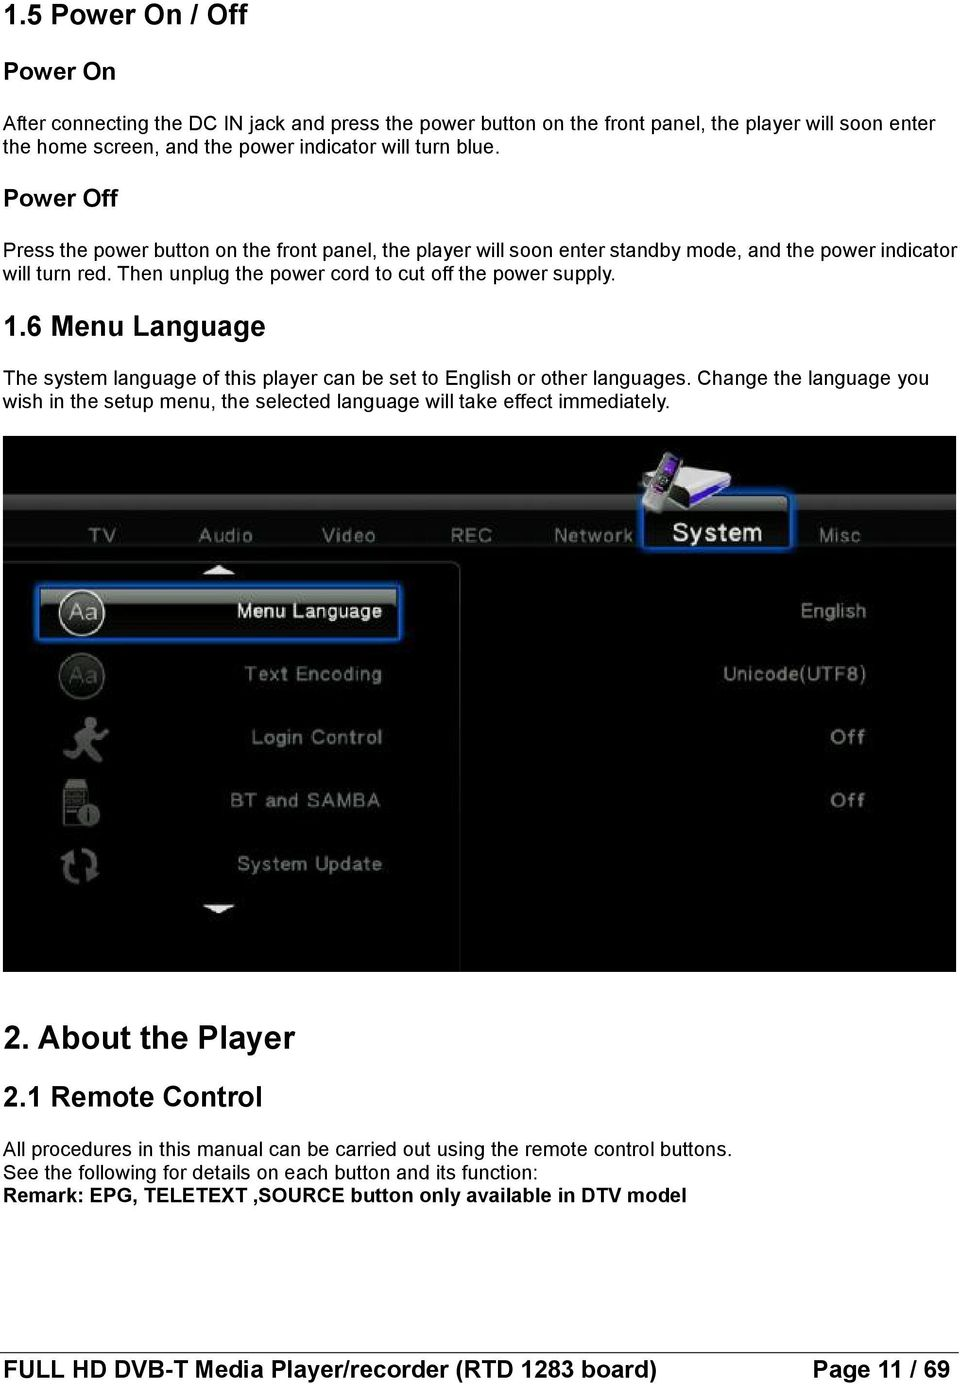 6 Menu Language The system language of this player can be set to English or other languages. Change the language you wish in the setup menu, the selected language will take effect immediately. 2.